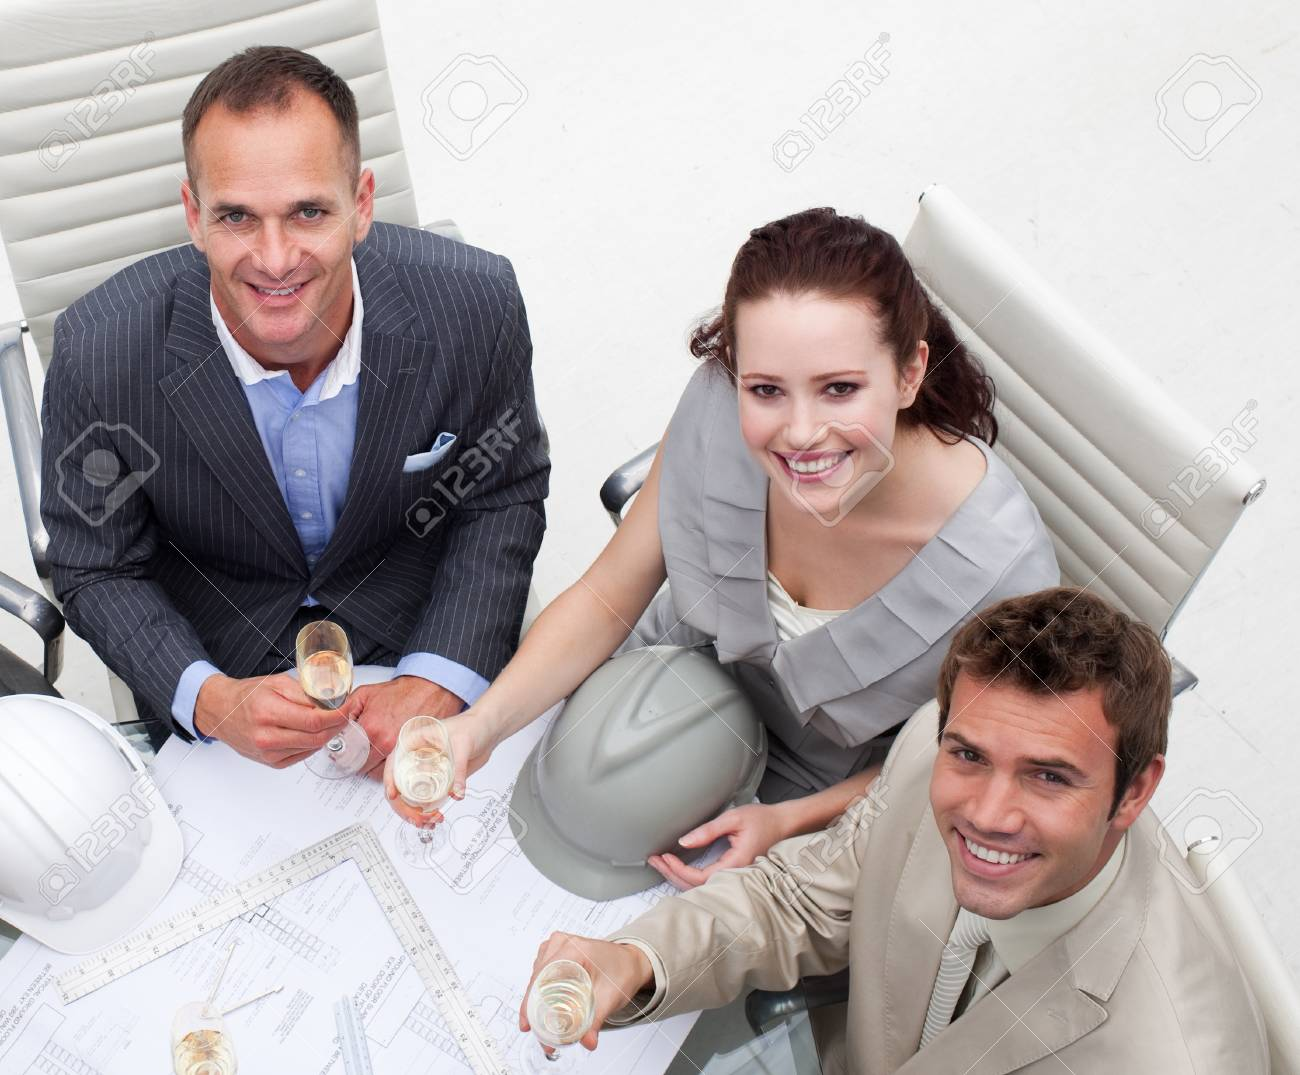 Happy architects drinking champagne in the office Stock Photo - 10076872